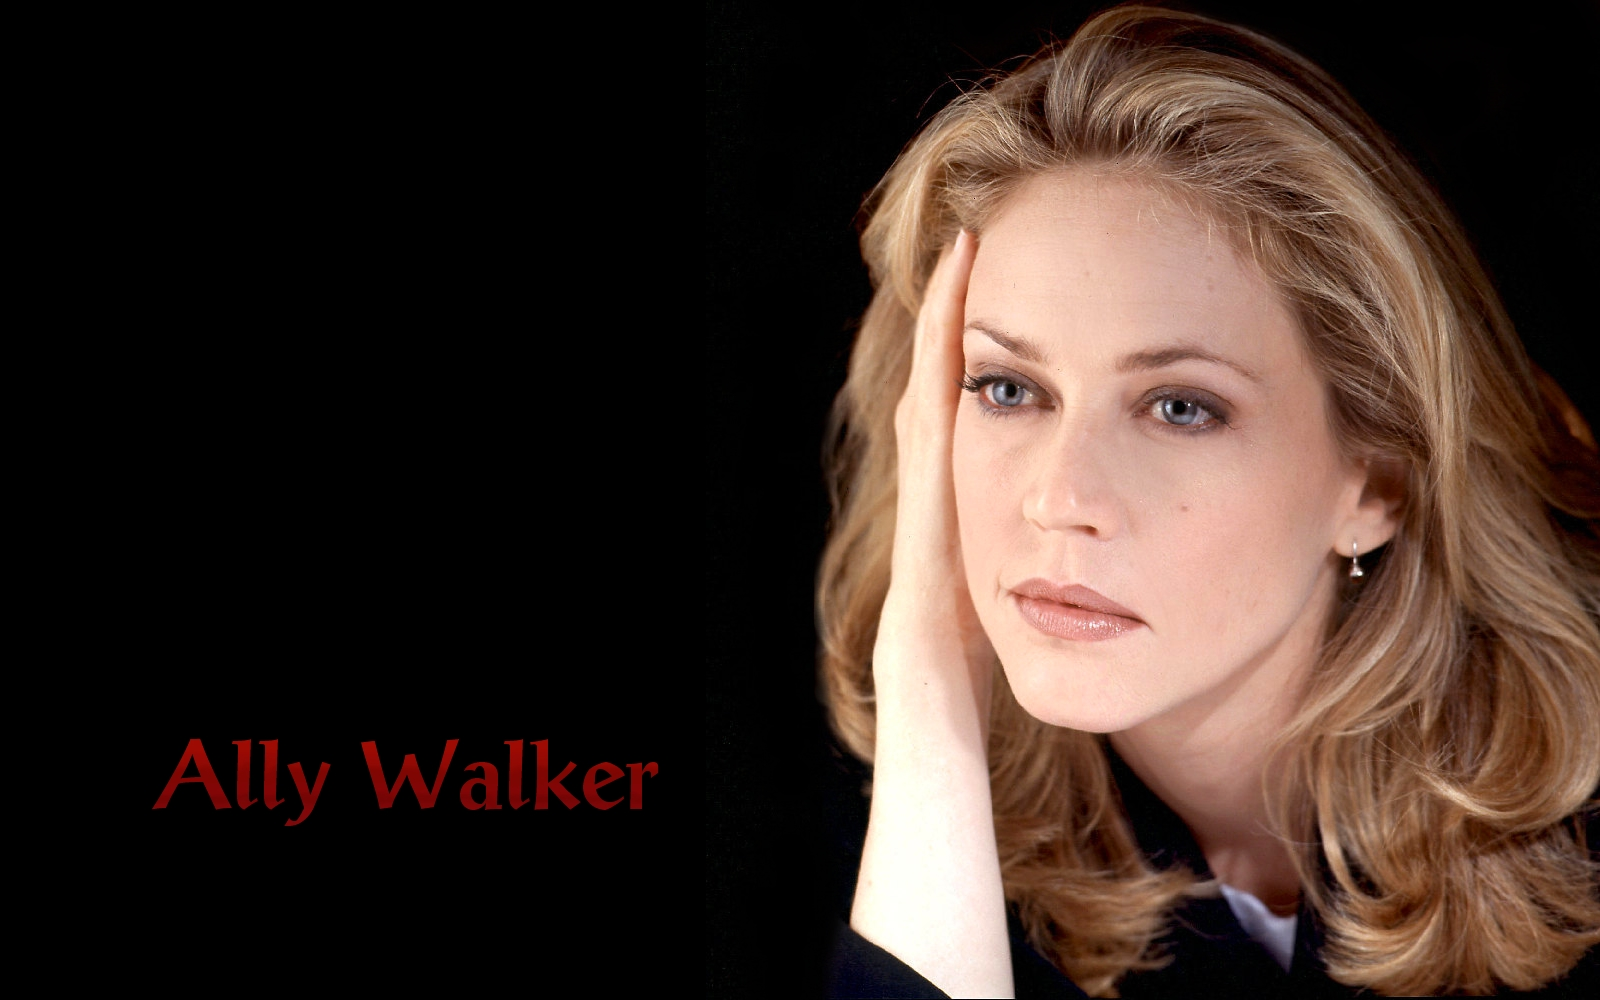 ally walker dailymotion